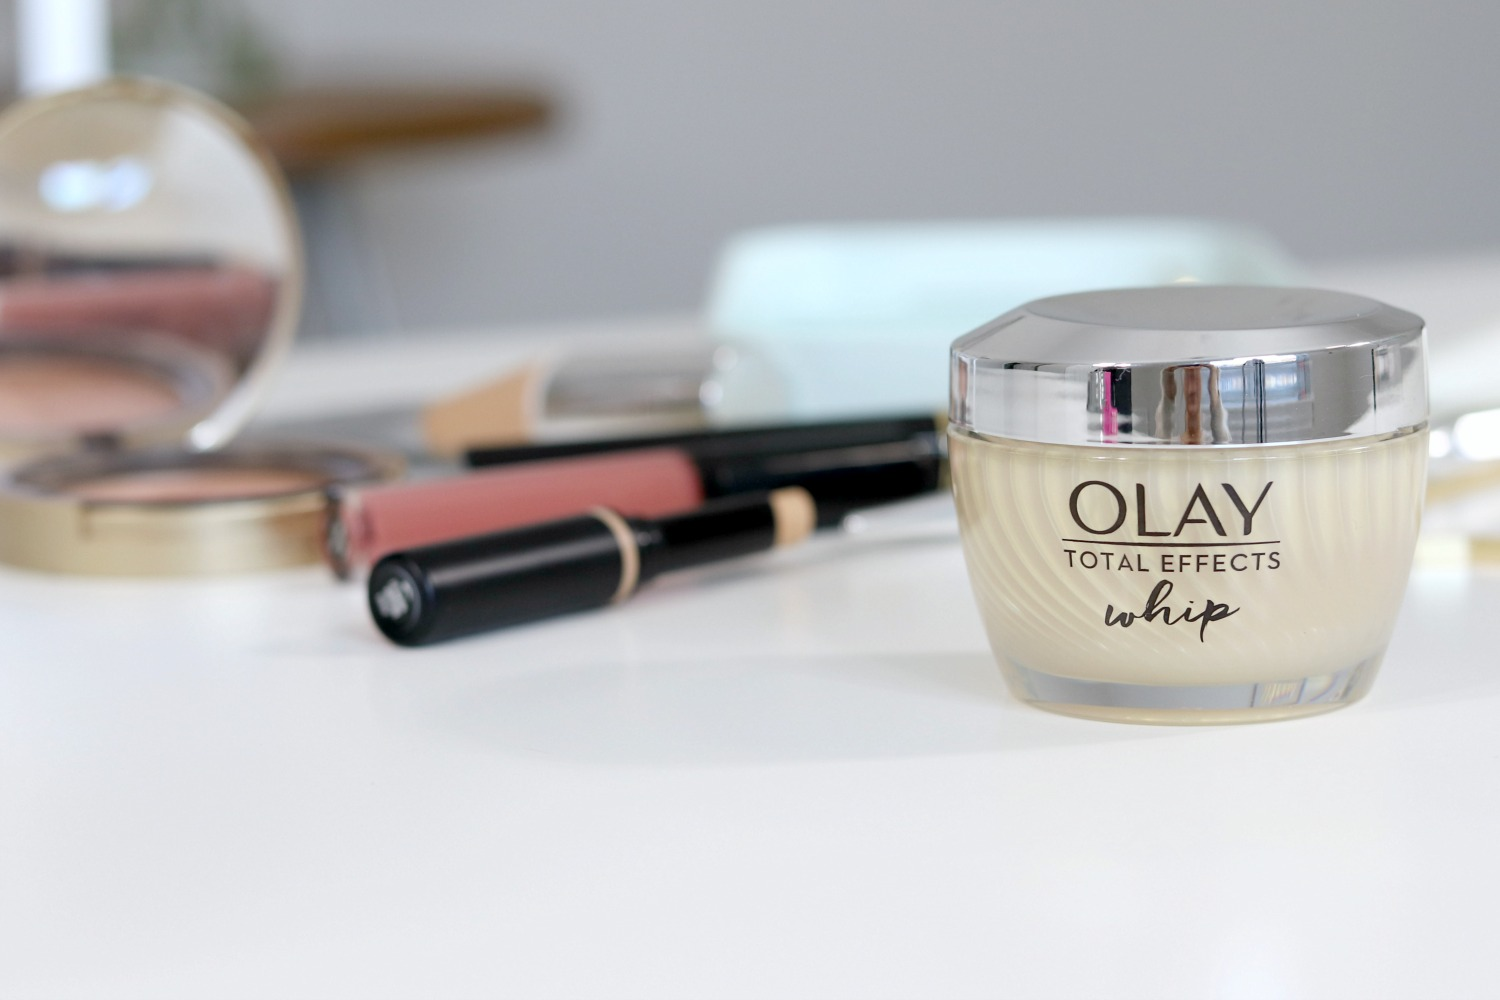 Moisturizer That Saves Time In The Morning Olay Whips Review | Lightweight Drugstore Anti Aging Moisturizer